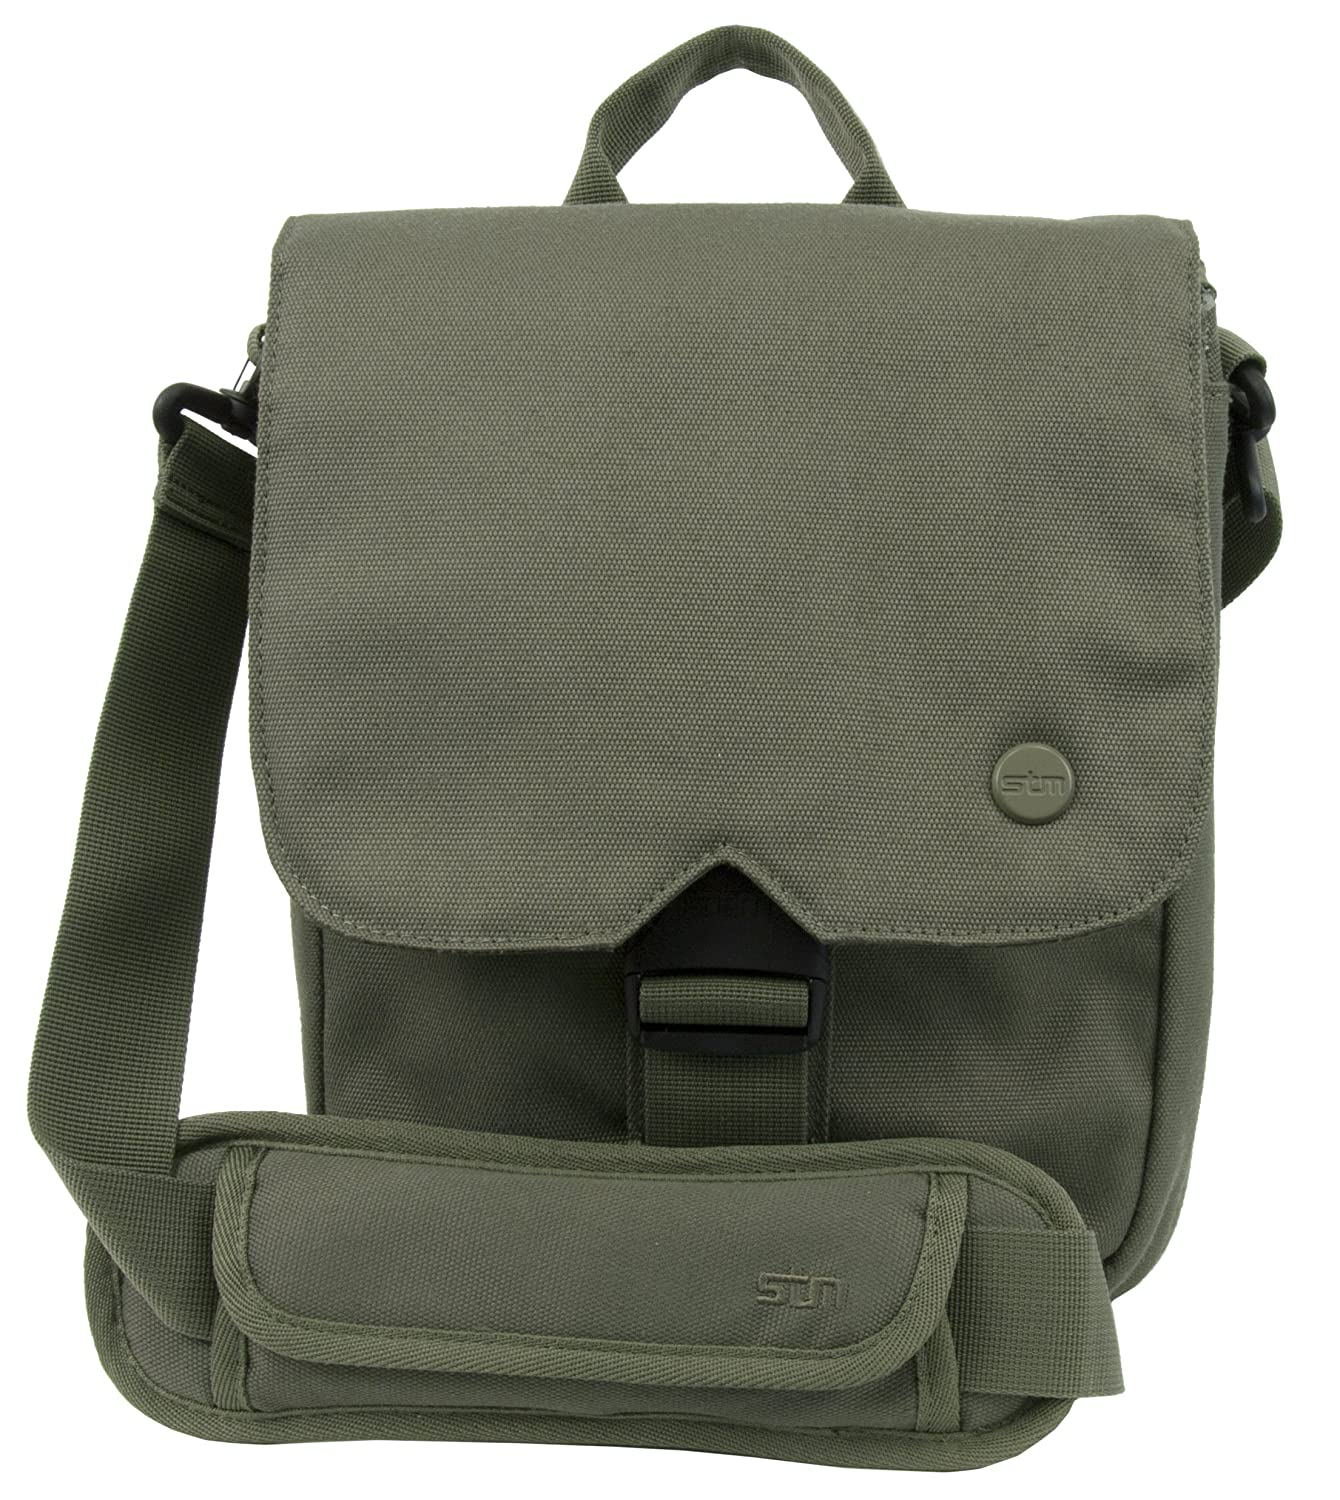 Best Shoulder Bag Ipad 78